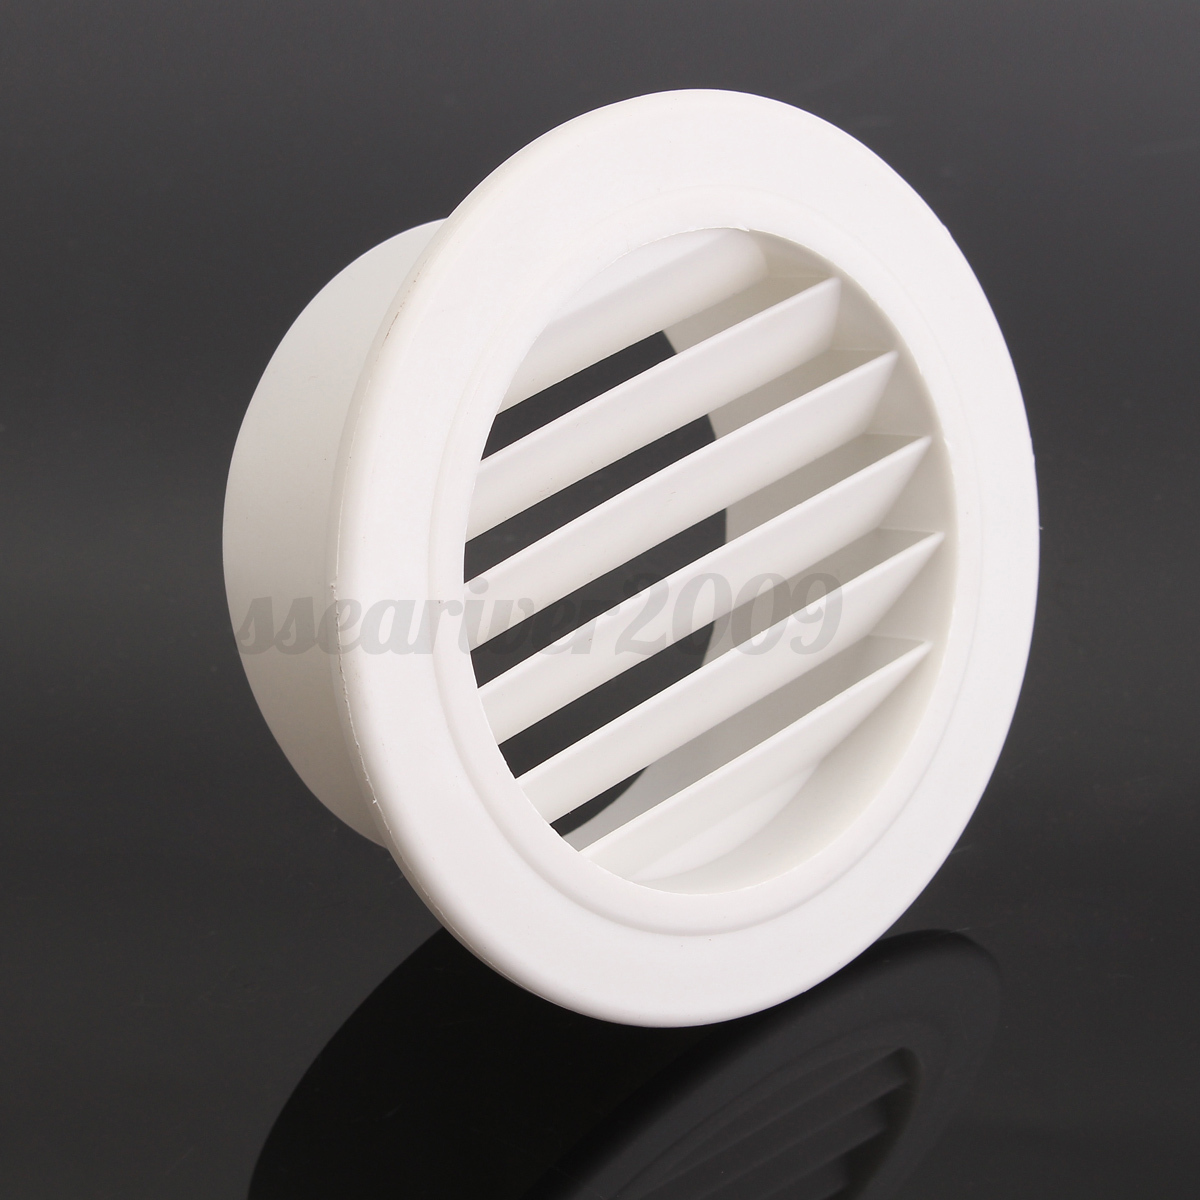 Air Ventilator Wall : Plastic air vent grille cover wall ventilation outlet